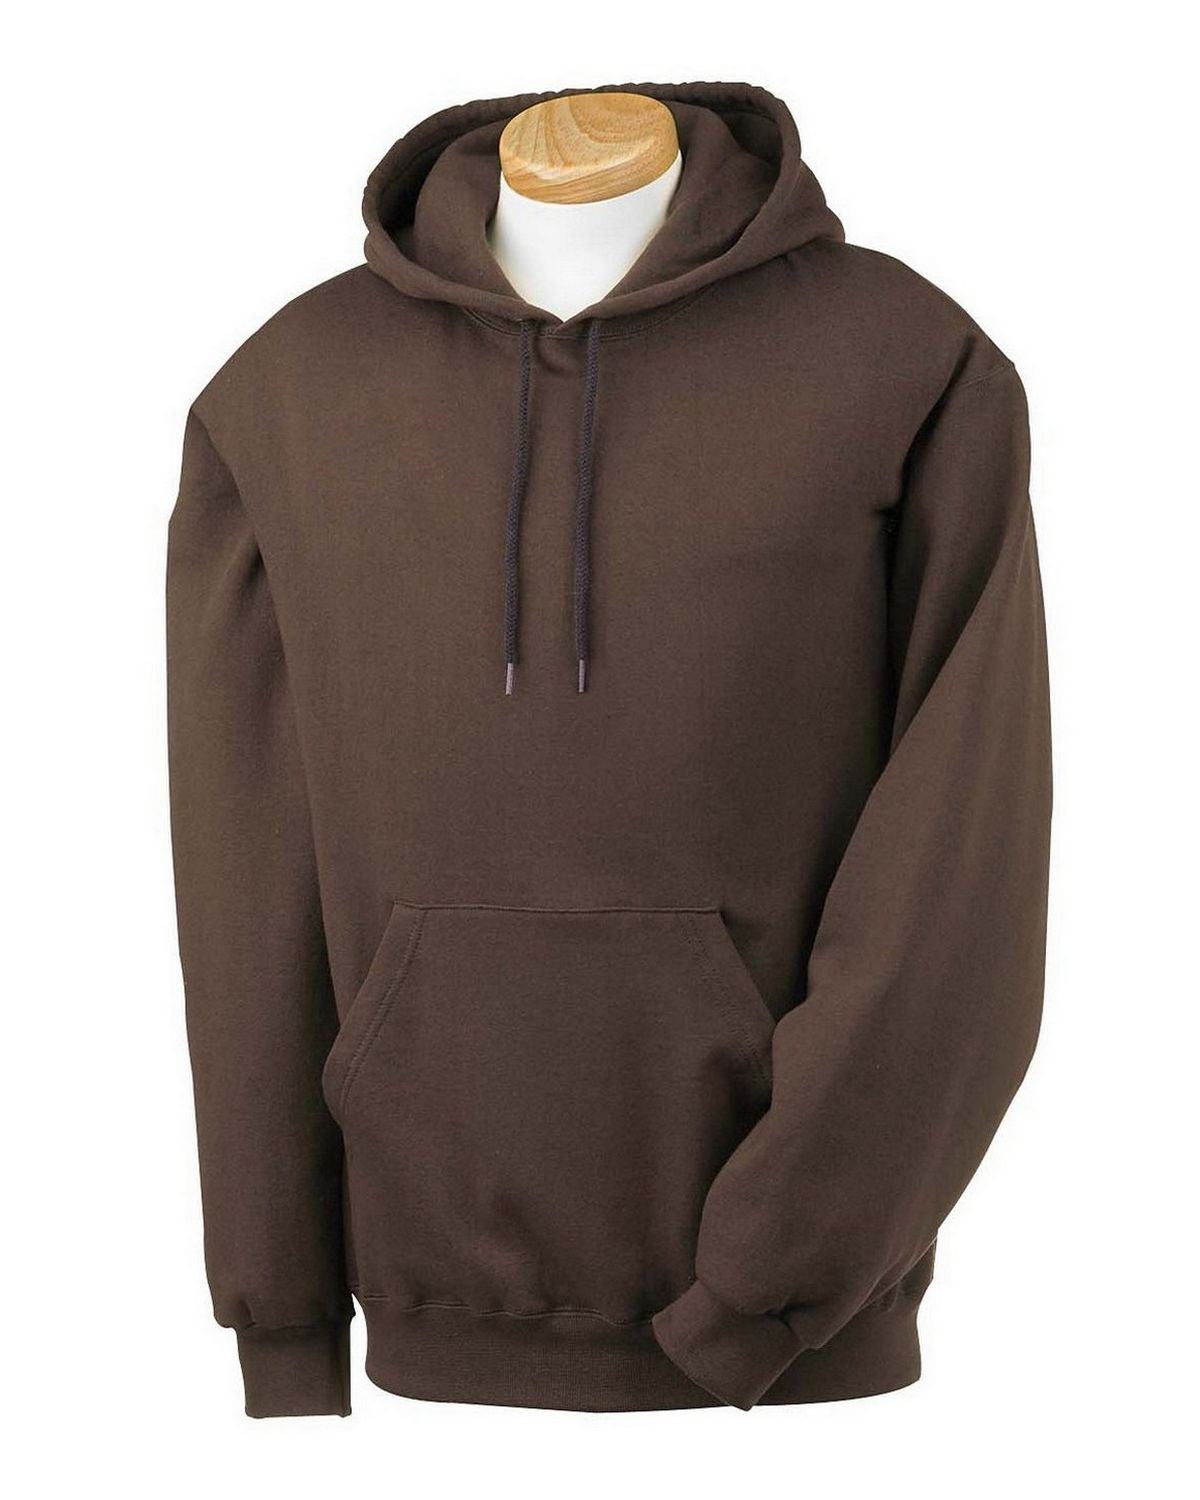 Fruit of the Loom 82130 Super Heavyweight 70/30 Hood - Chocolate - S 82130